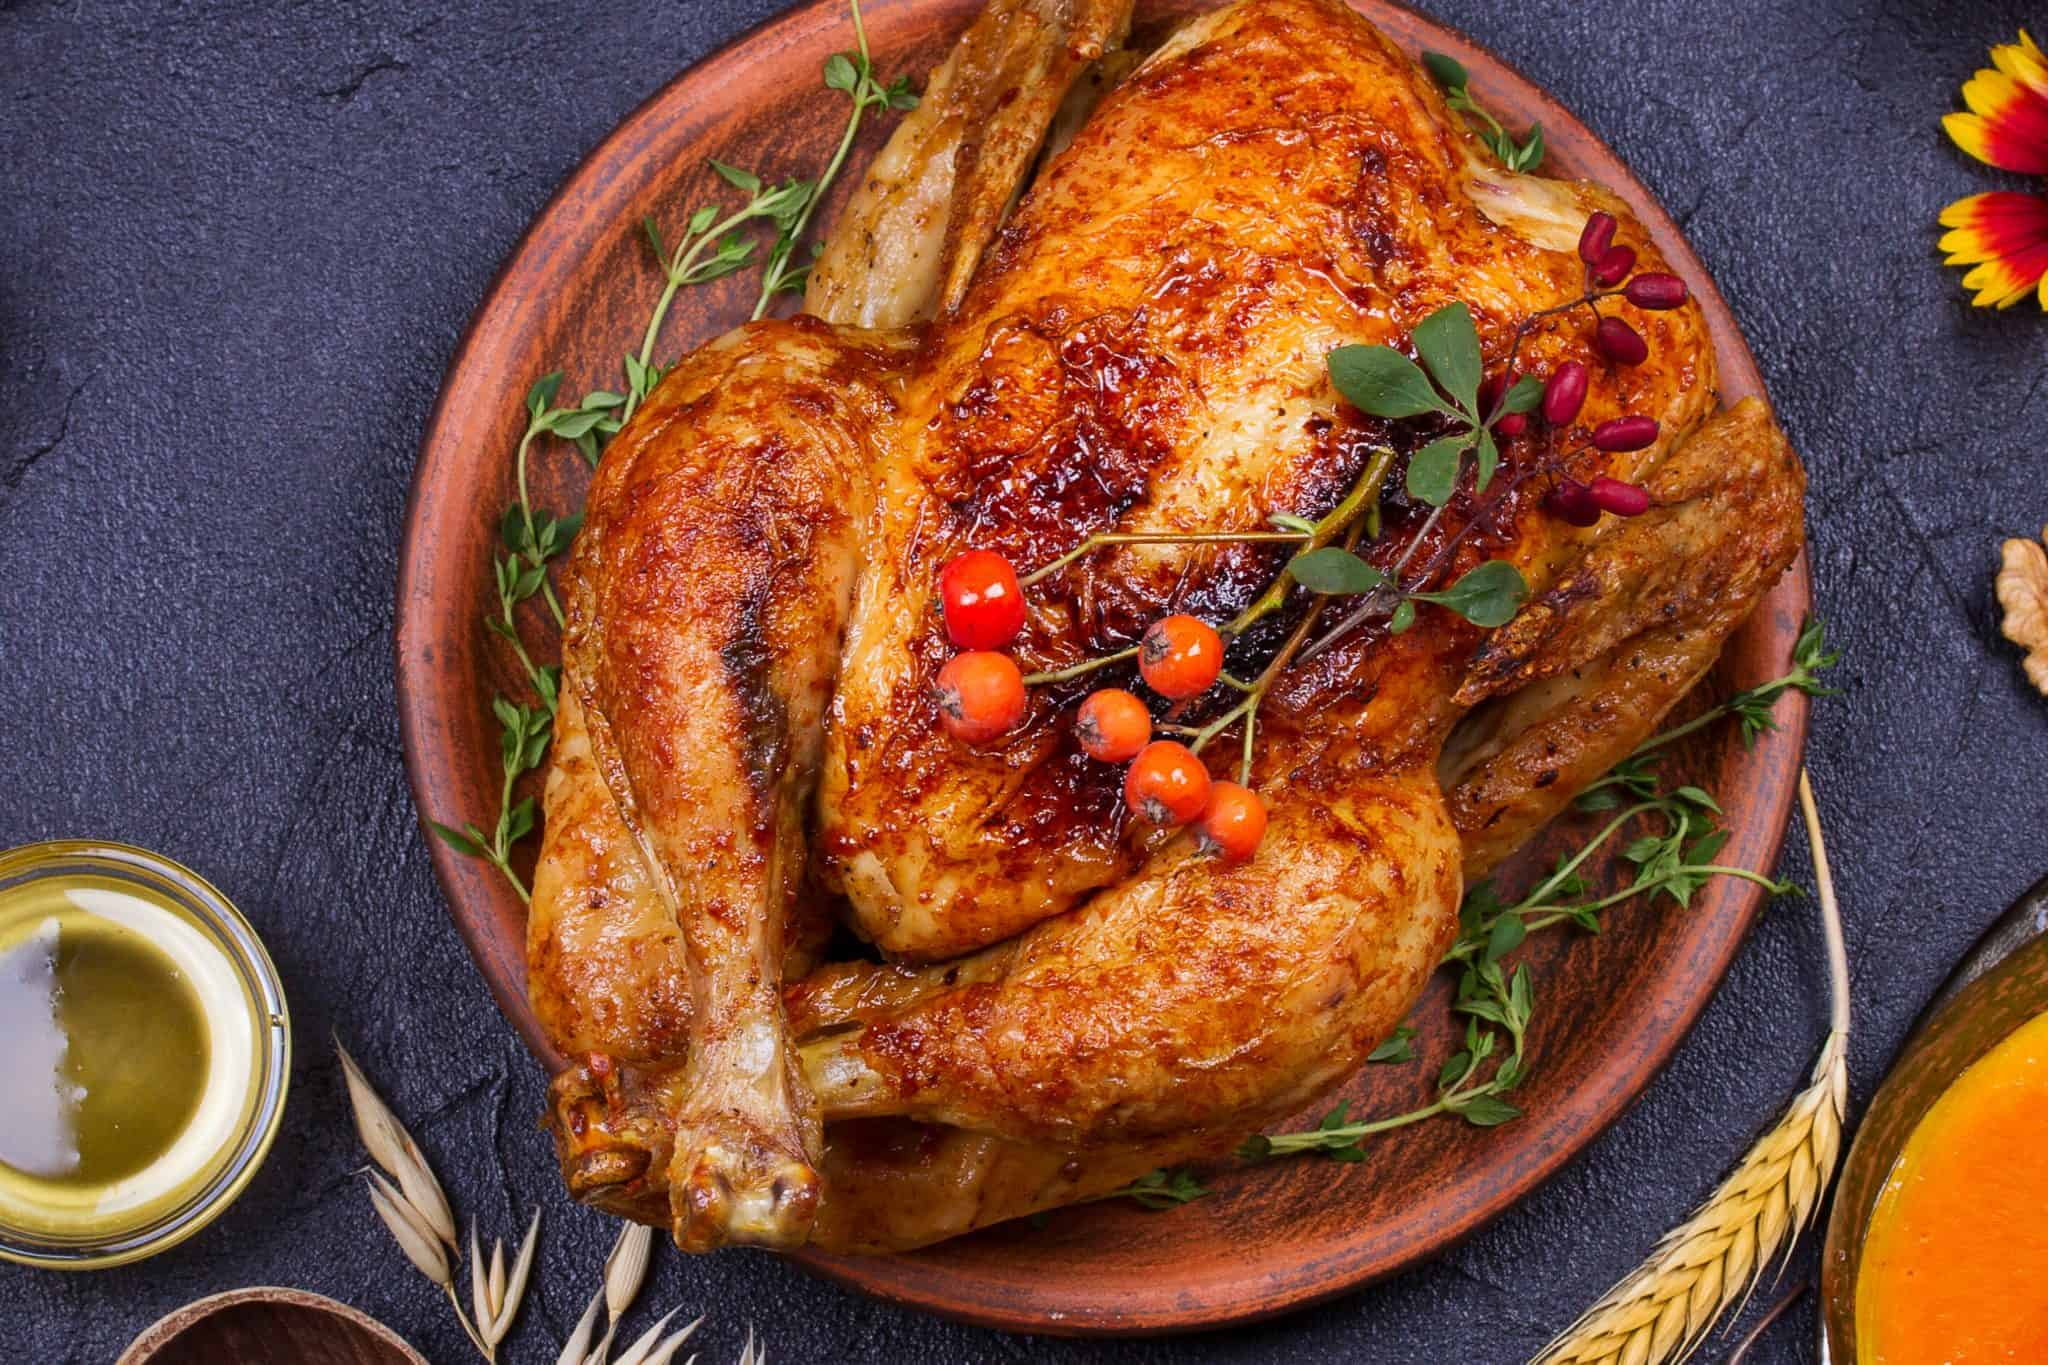 Have you ever wondered how to fry a turkey? Here are easy step-by-step instructions that can be used with any fried turkey recipe. #howtofryaturkey #friedturkeyrecipe www.savoryexperiments.com